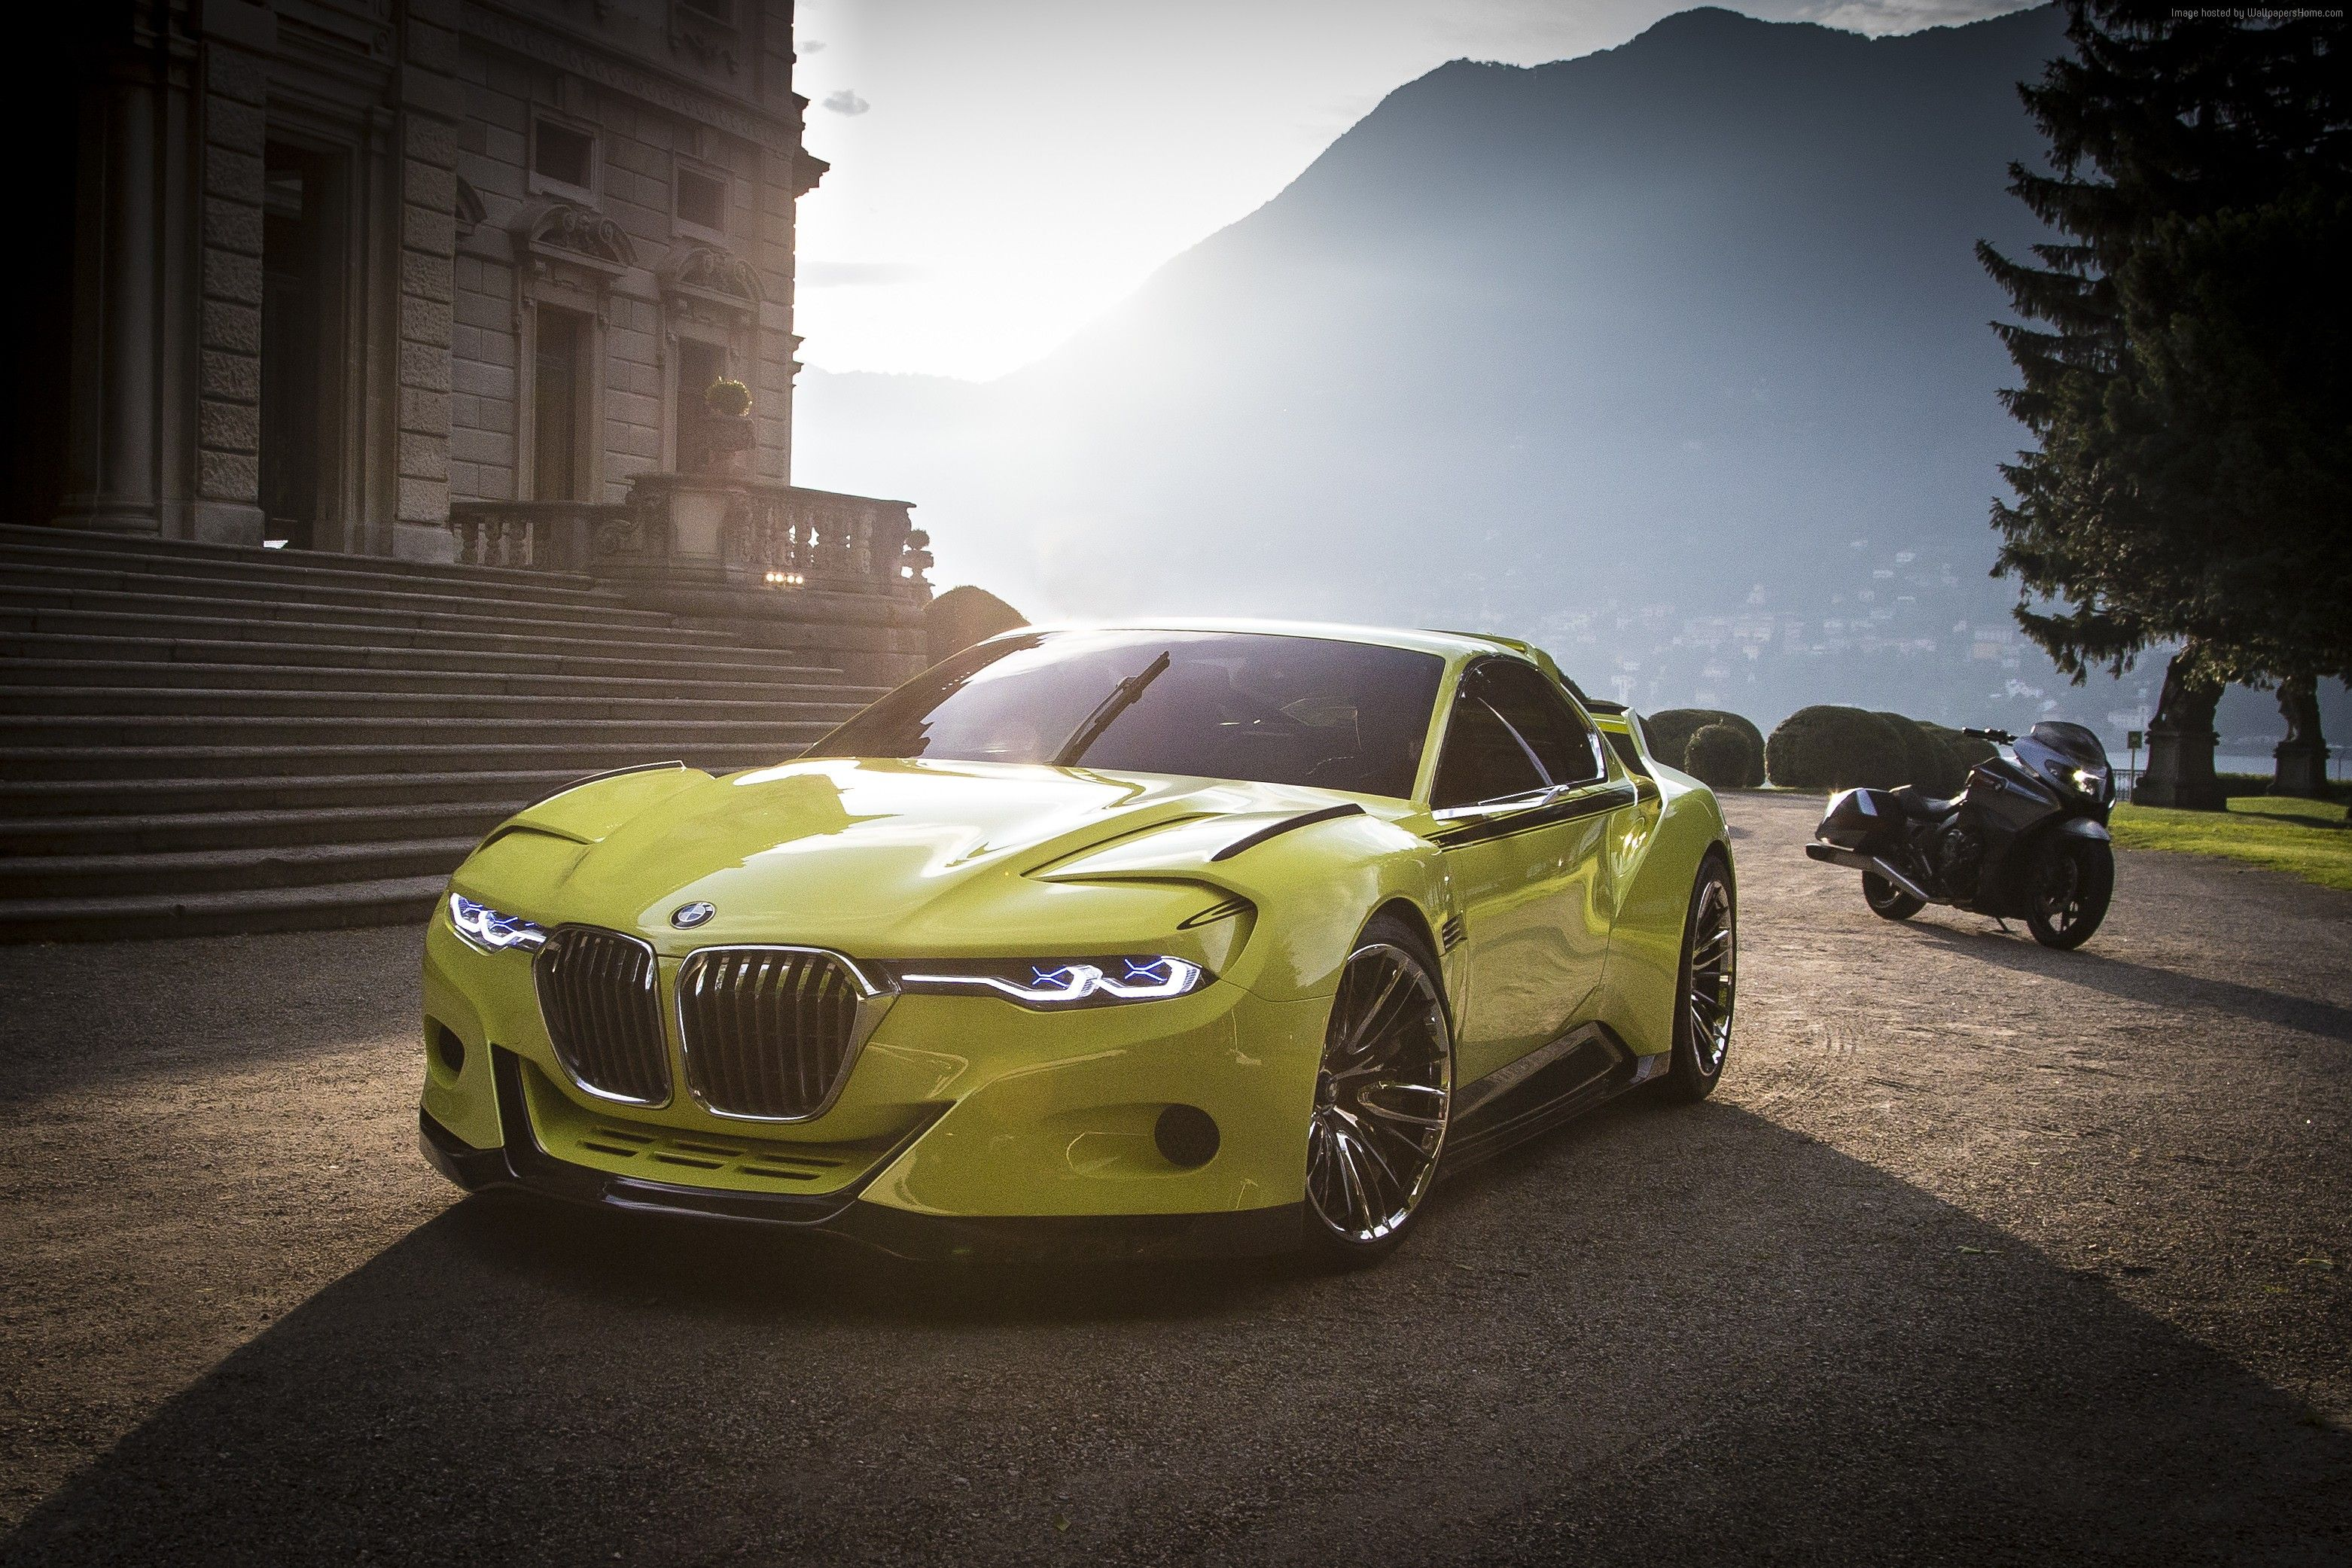 Awesome Yellow BMW Sports Car K Wallpaper Cars UHD Pinterest - Sports cars 4k wallpapers